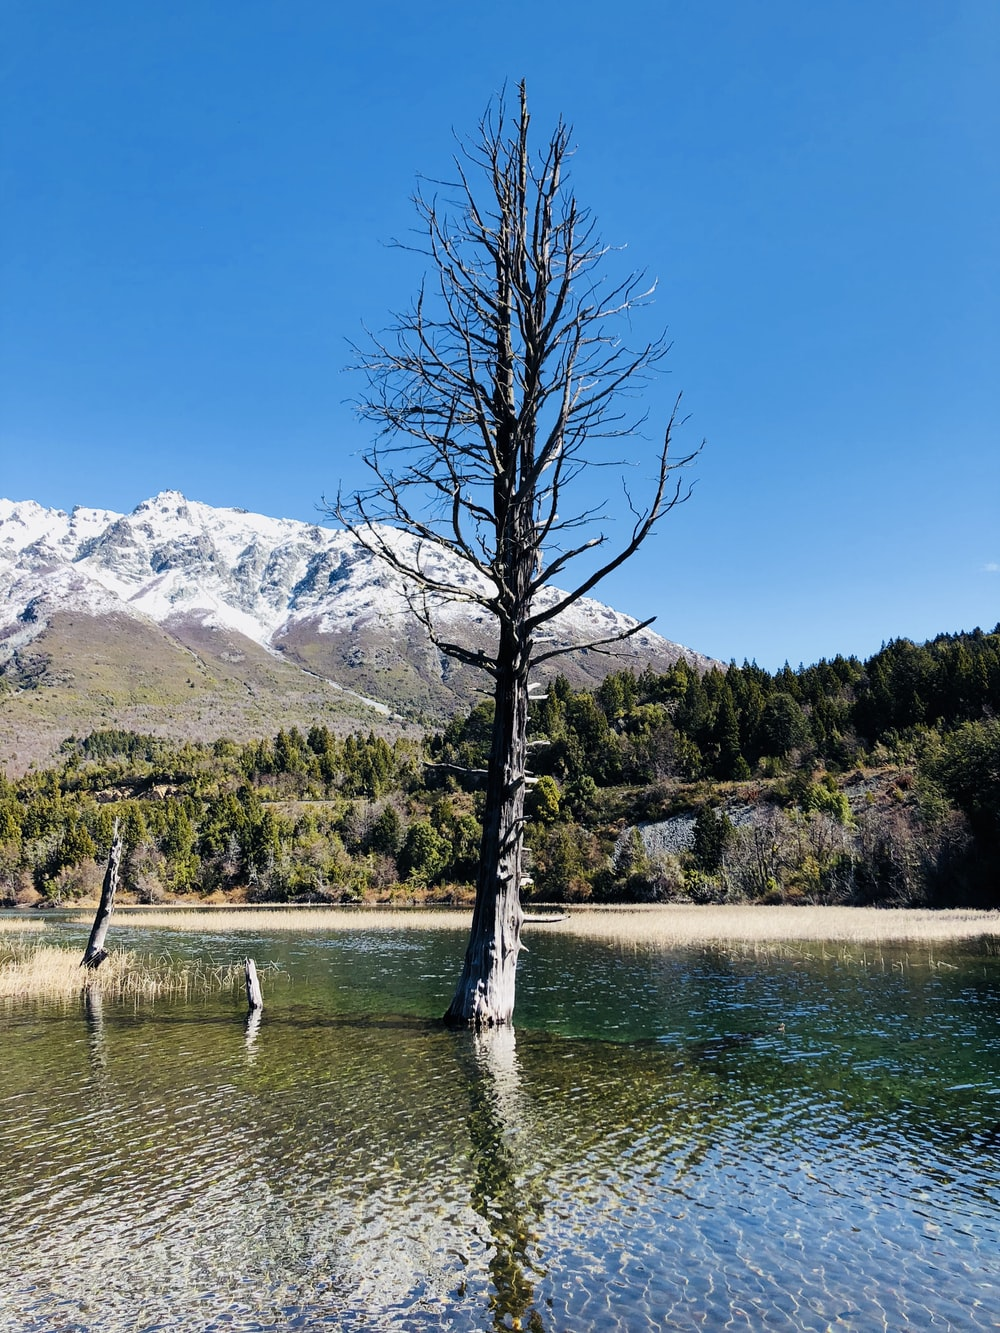 bare tree on body of water viewing mountain under blue and white skies during daytime